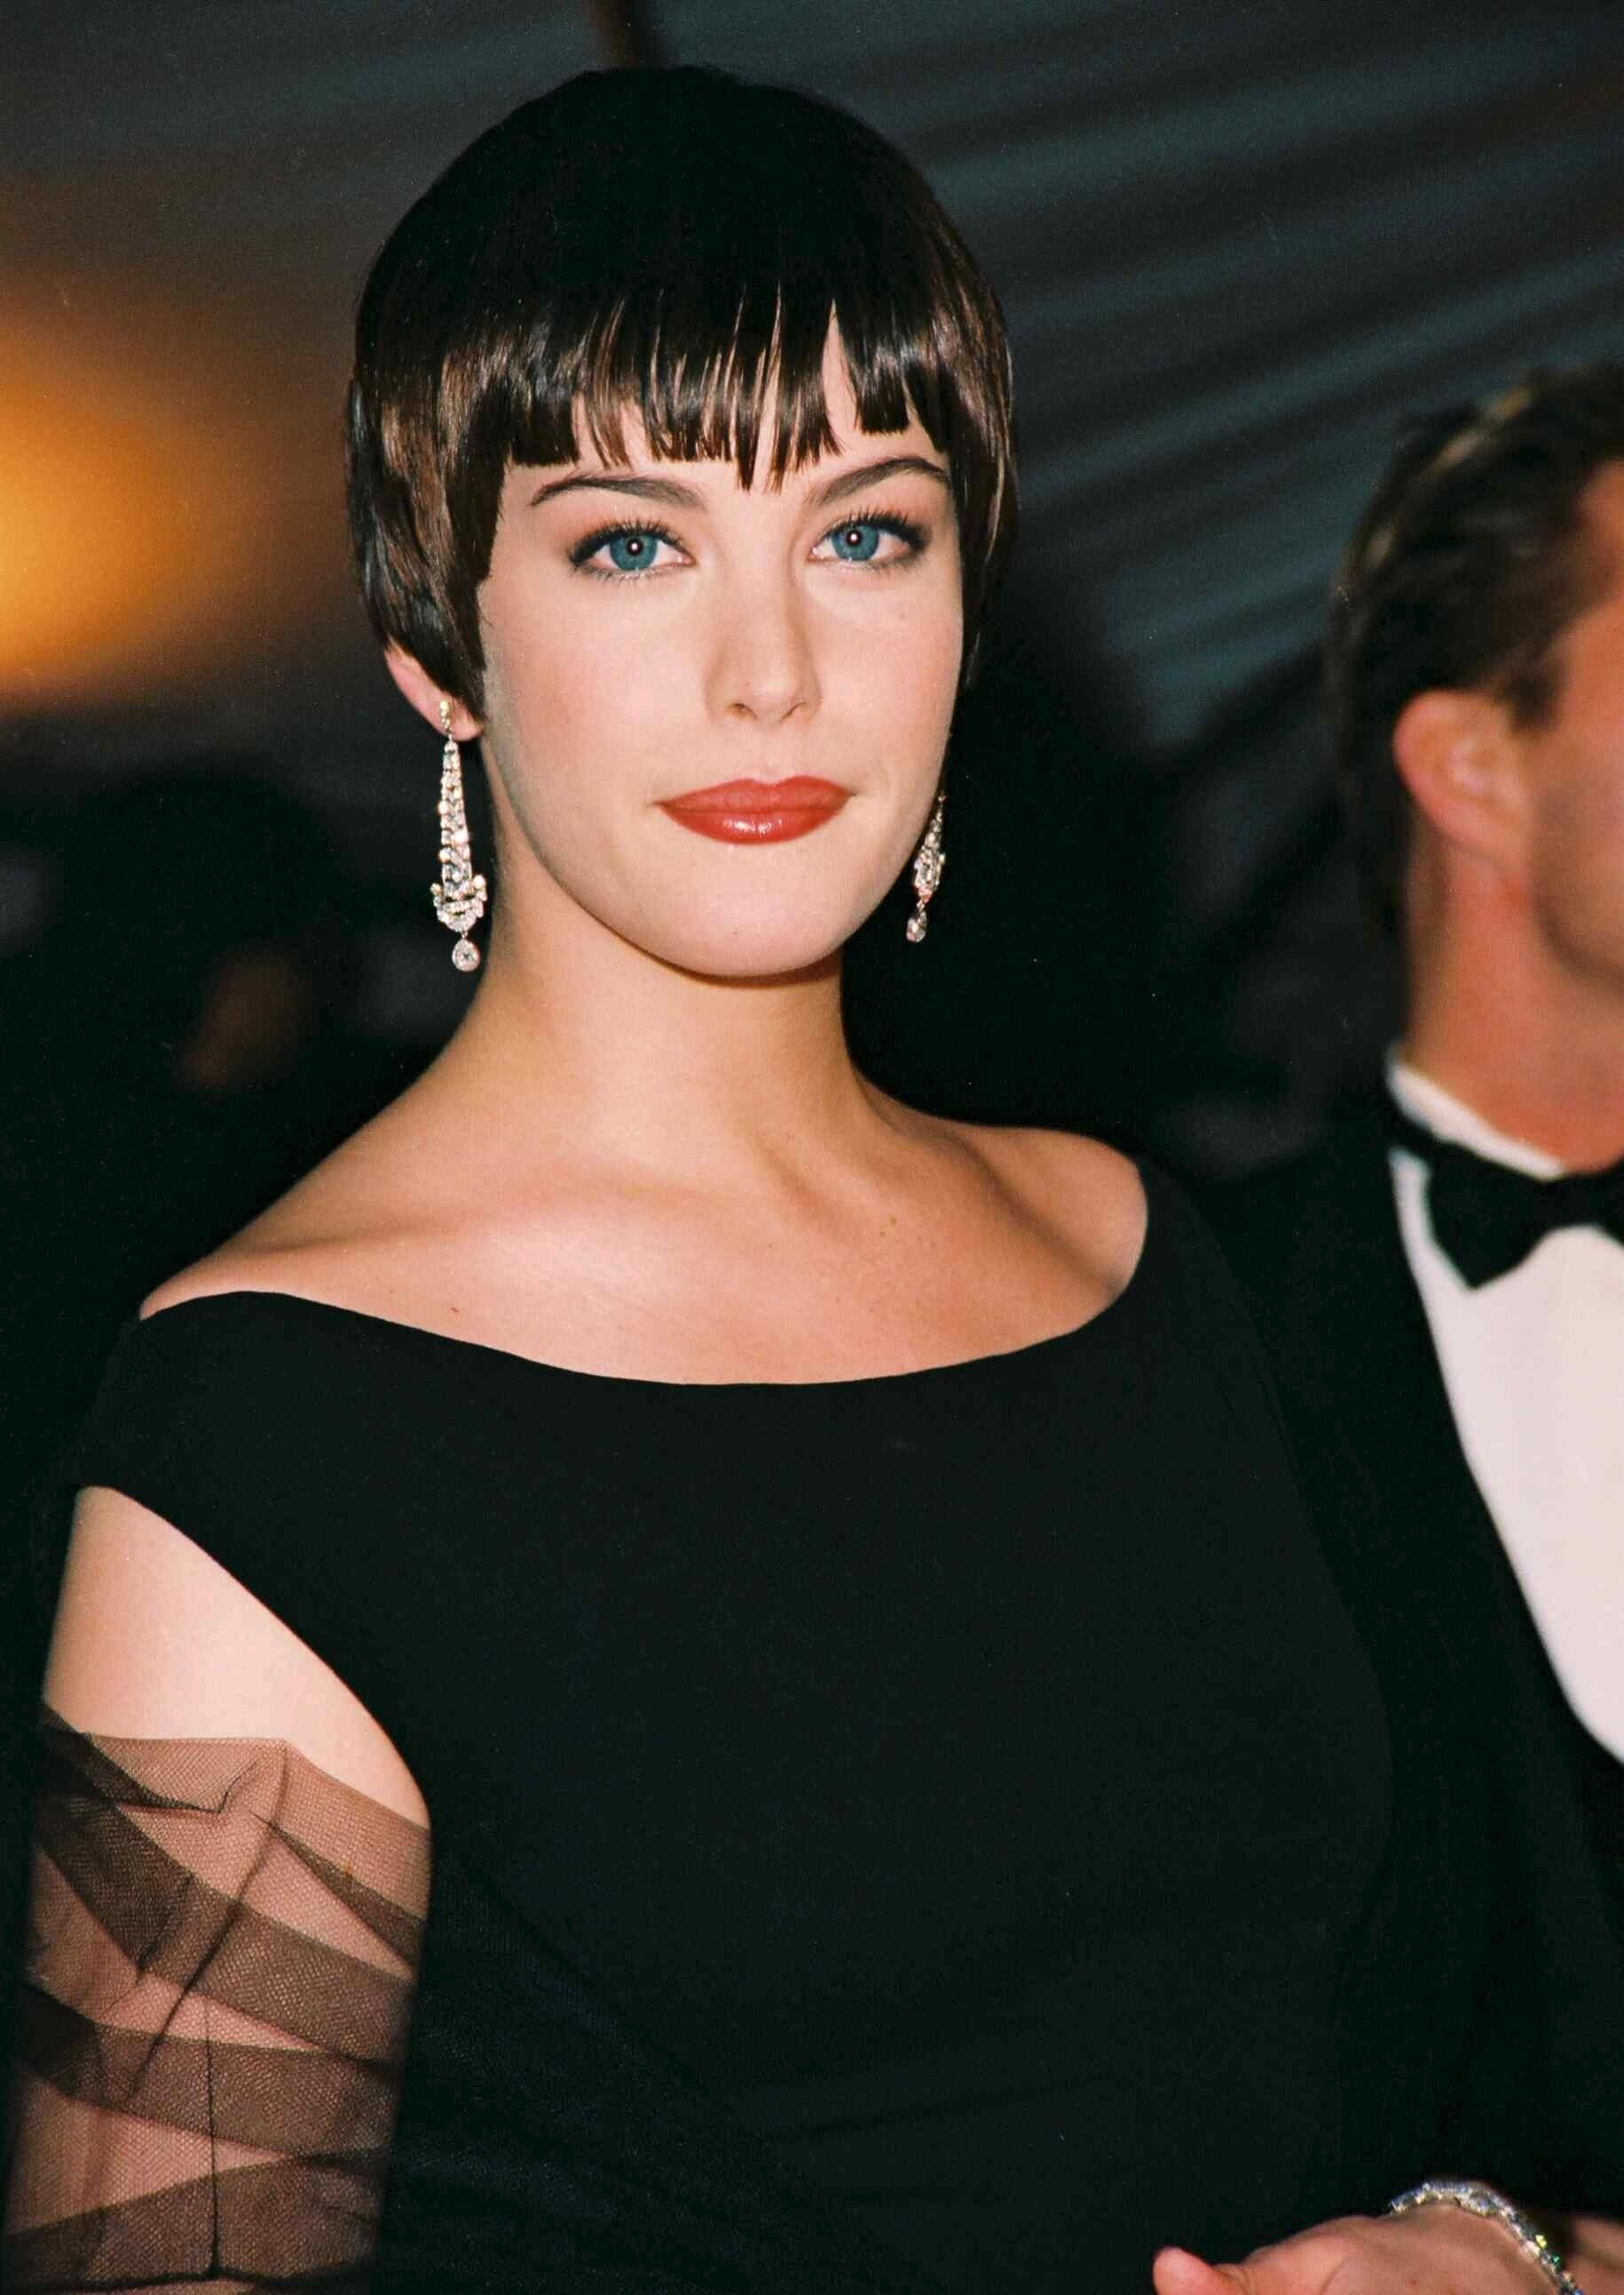 Liv Tyler attends the 50th Met Costume Institute Gala in New York City on Dec. 7, 1998.